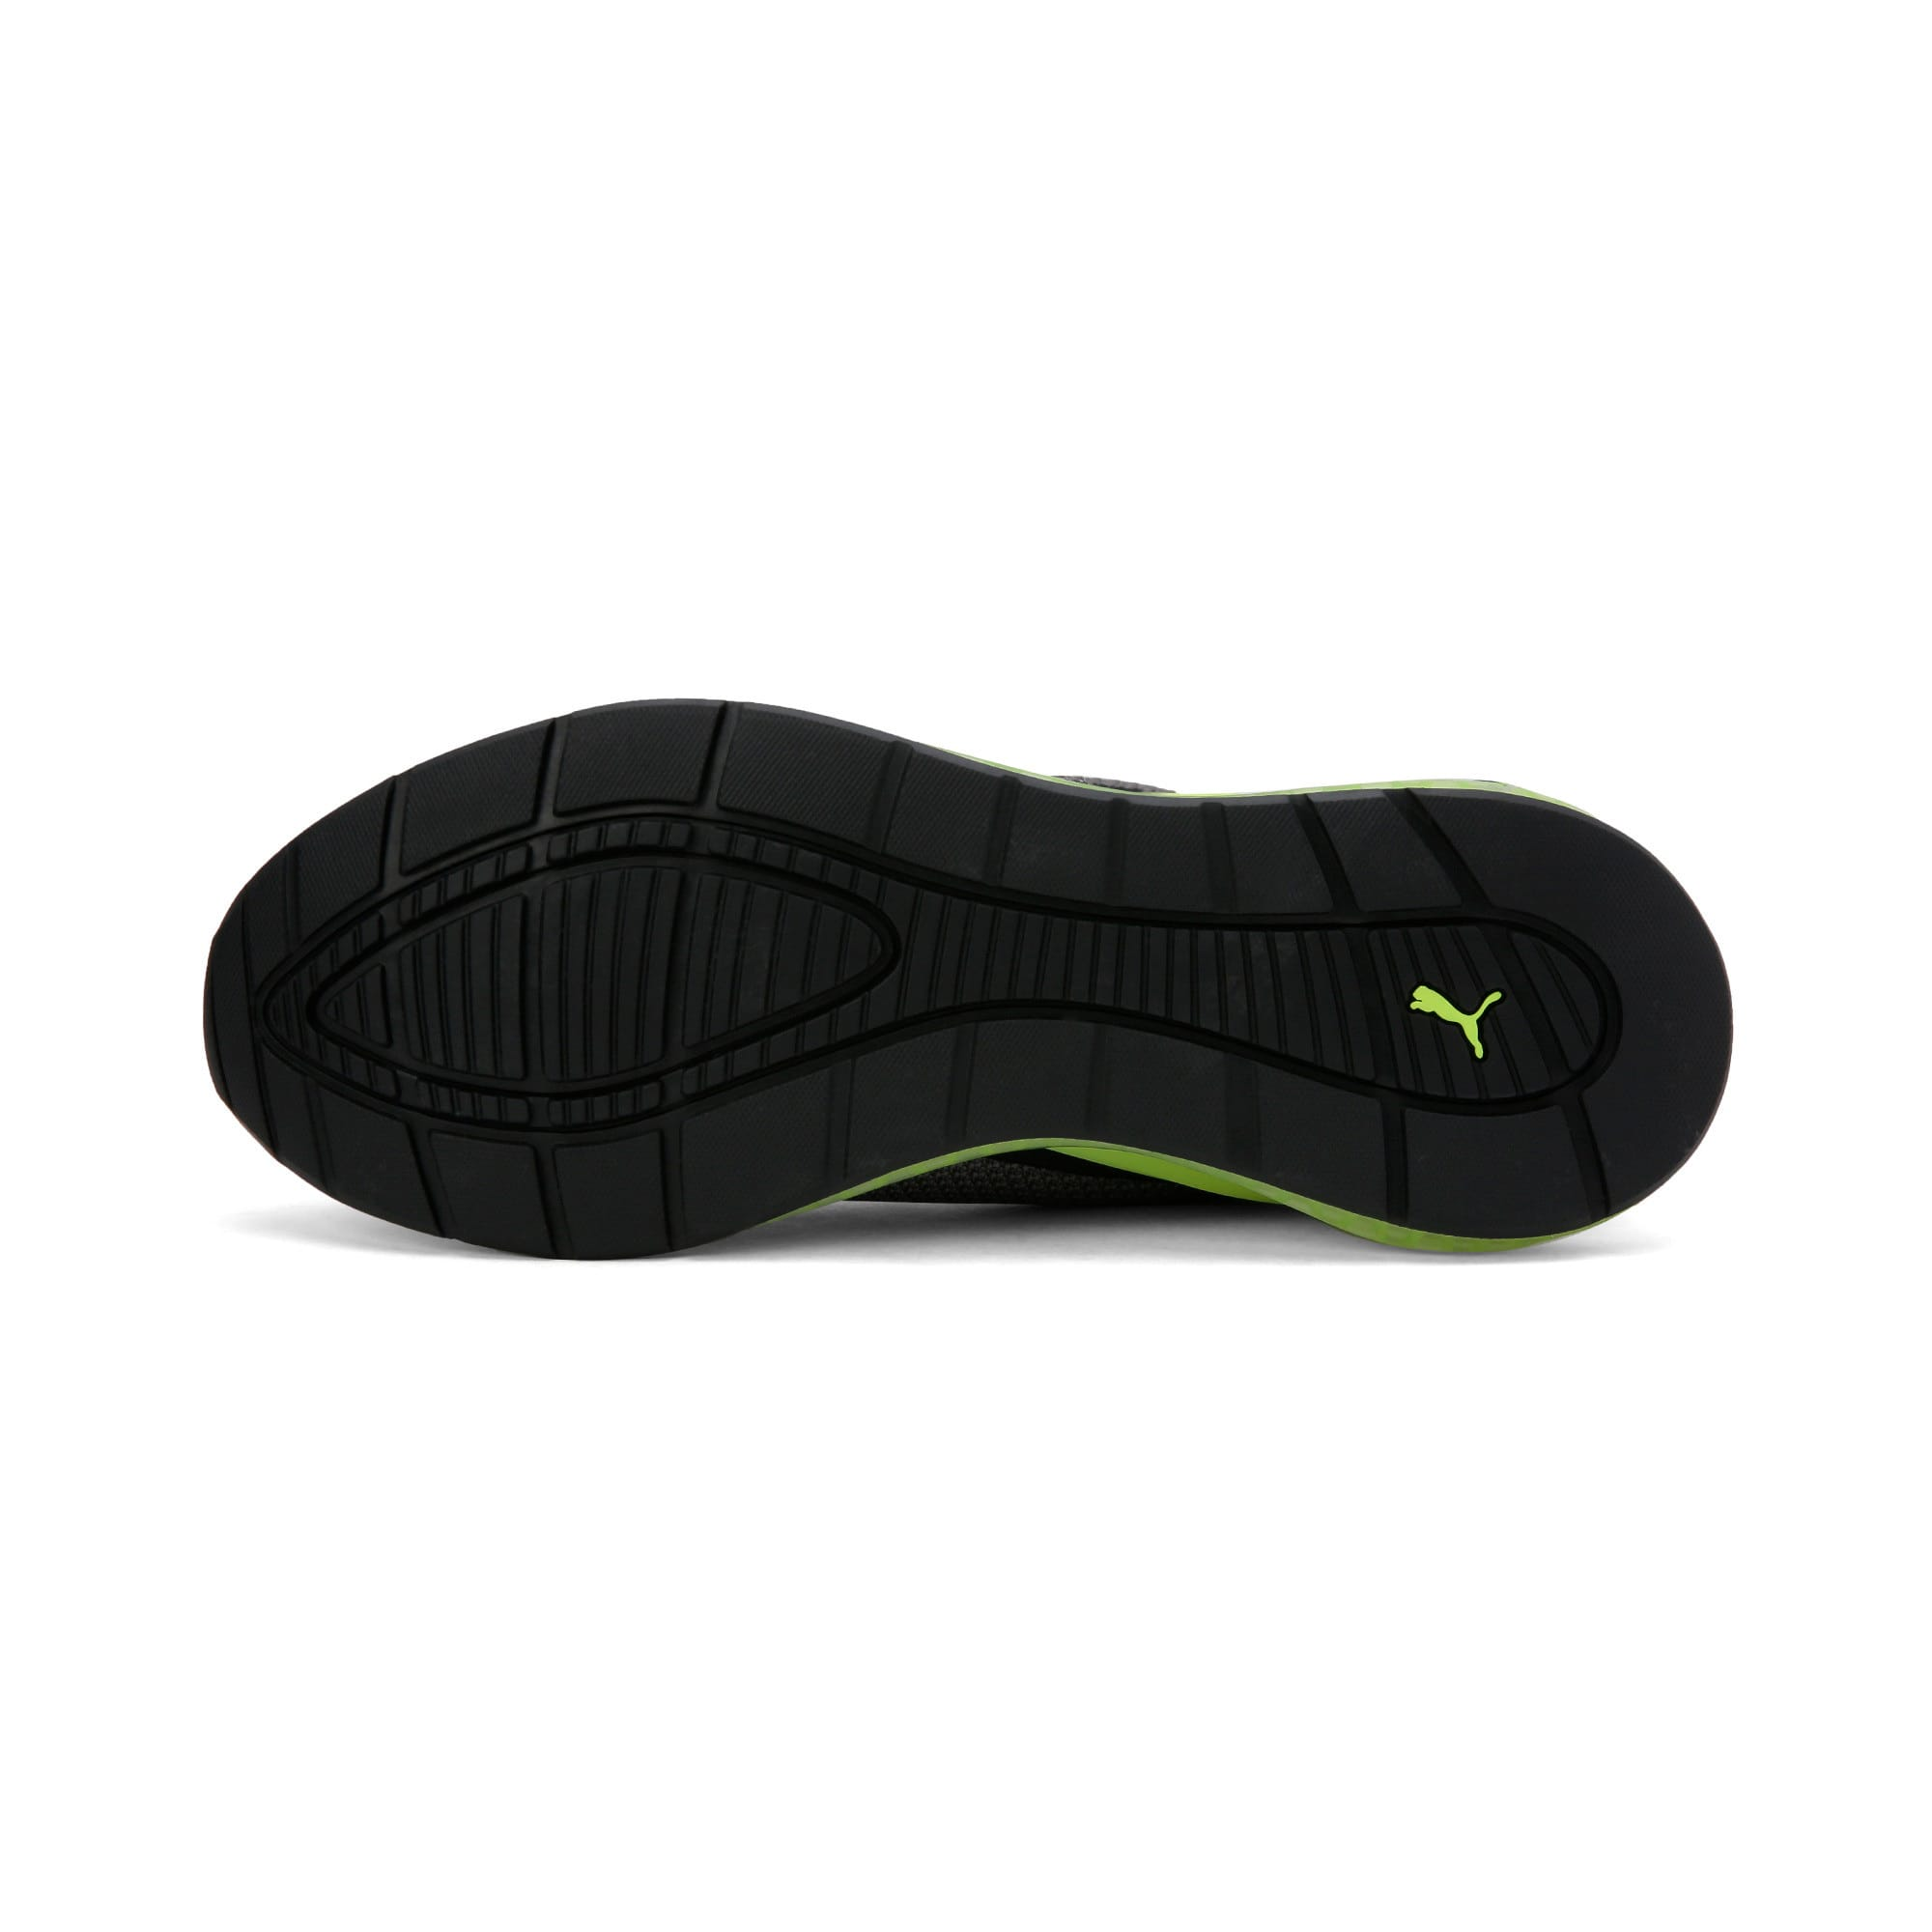 Thumbnail 6 of Cell Descend Weave Running Trainers, CASTLEROCK-Black-Yellow, medium-IND